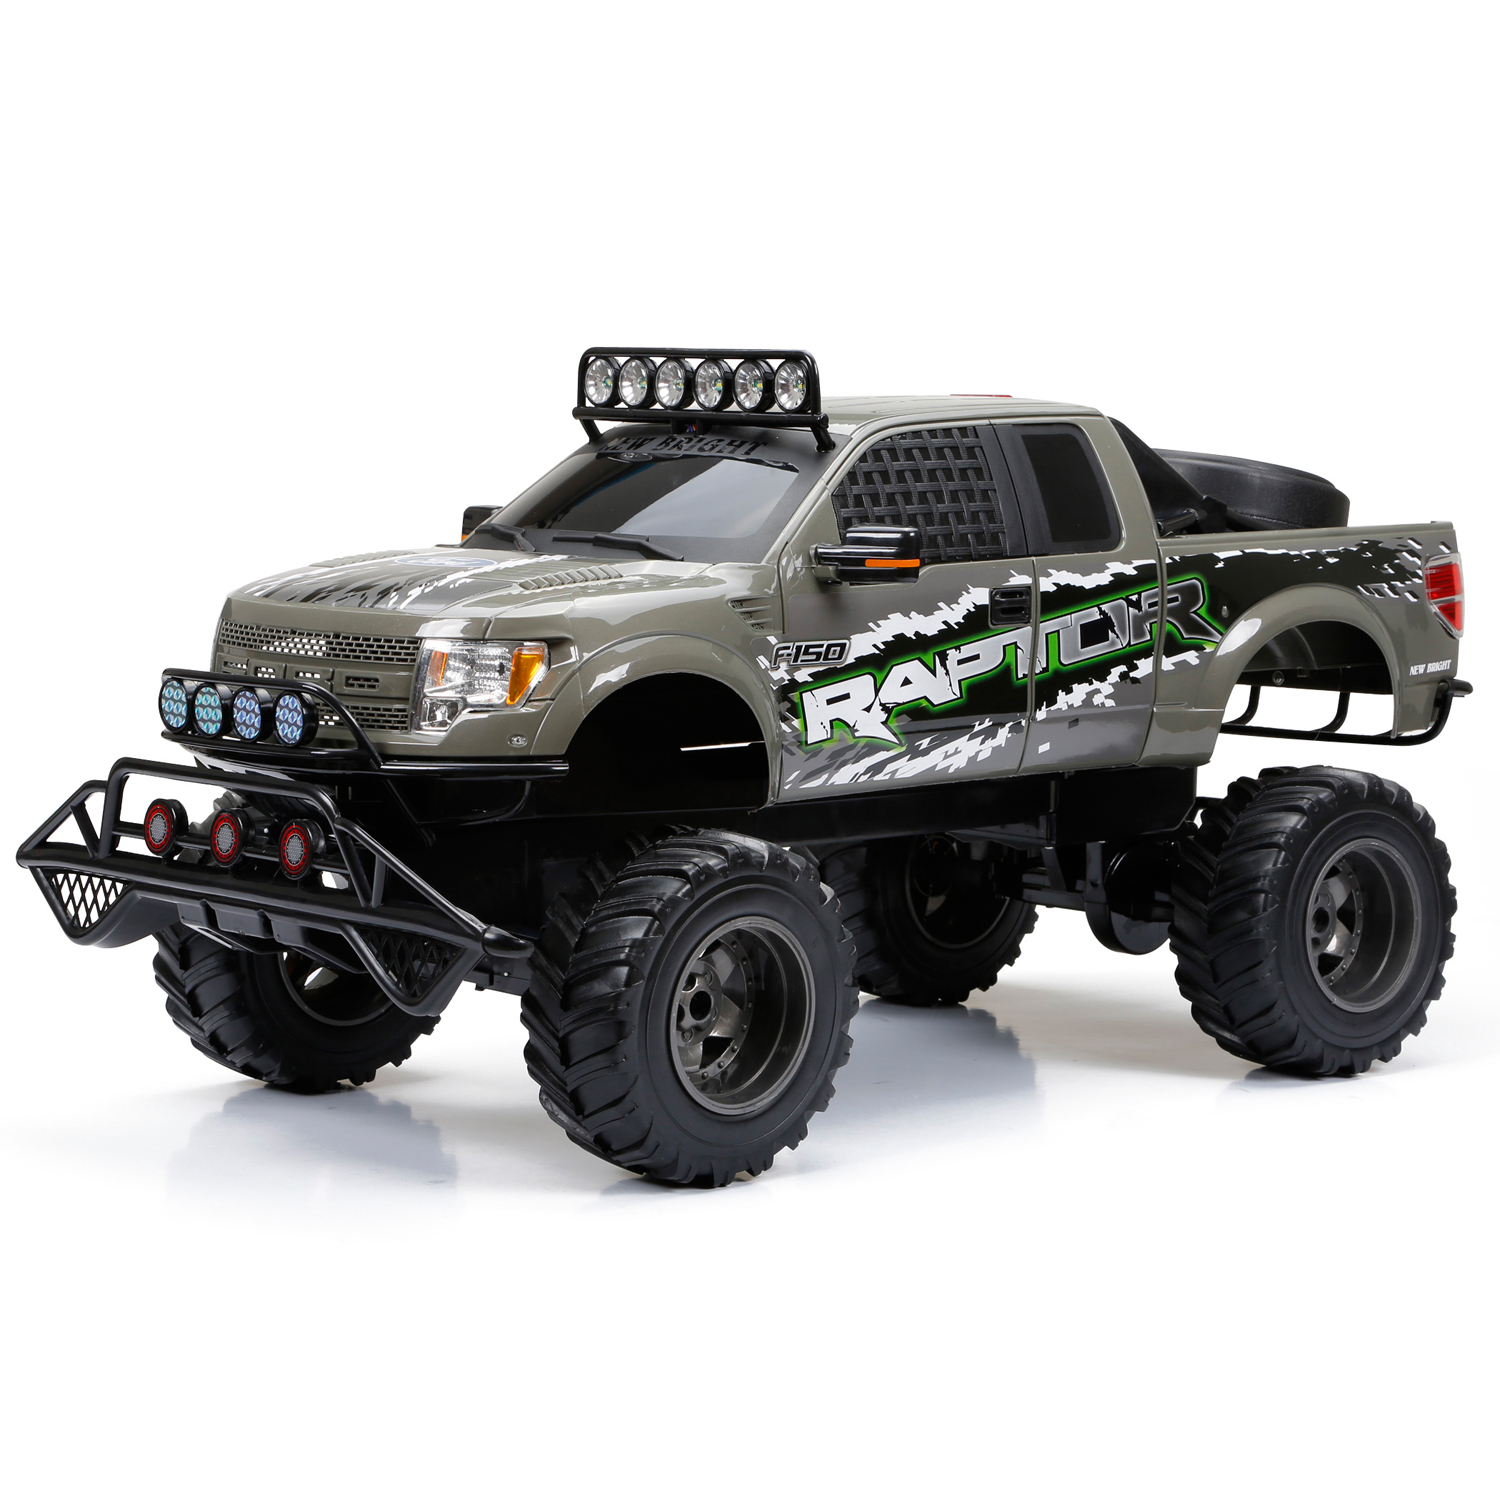 New Bright RC 1:6 Scale Ford Raptor Truck, Gray